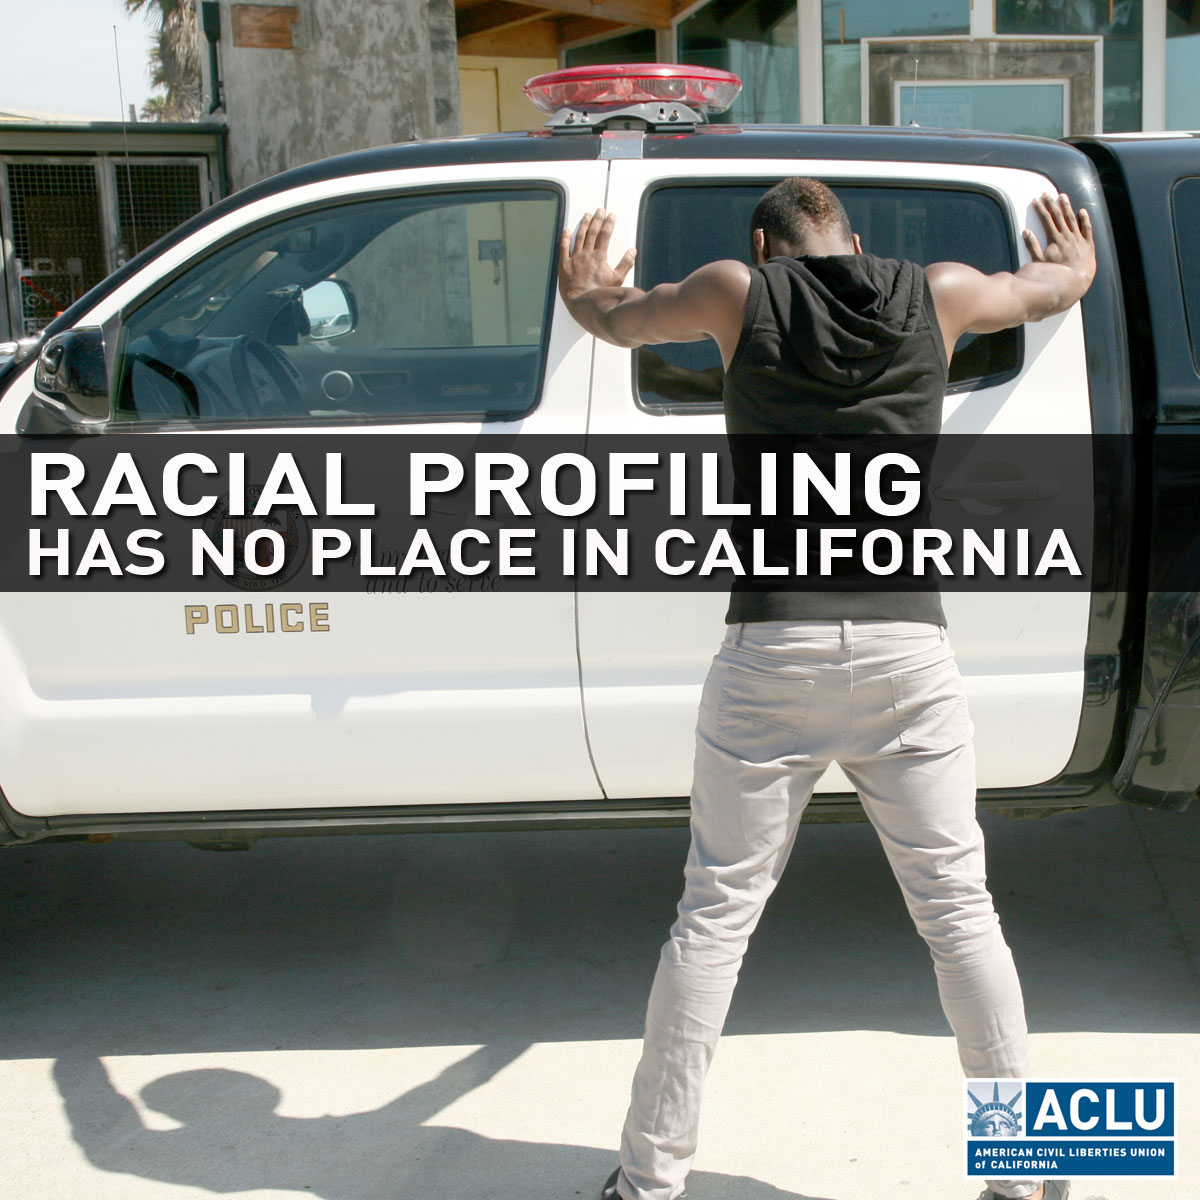 police racial profiling essays Research paper on racial profiling - how to build your argument building your argument requires reading a lot of information on the subject you are talking about.